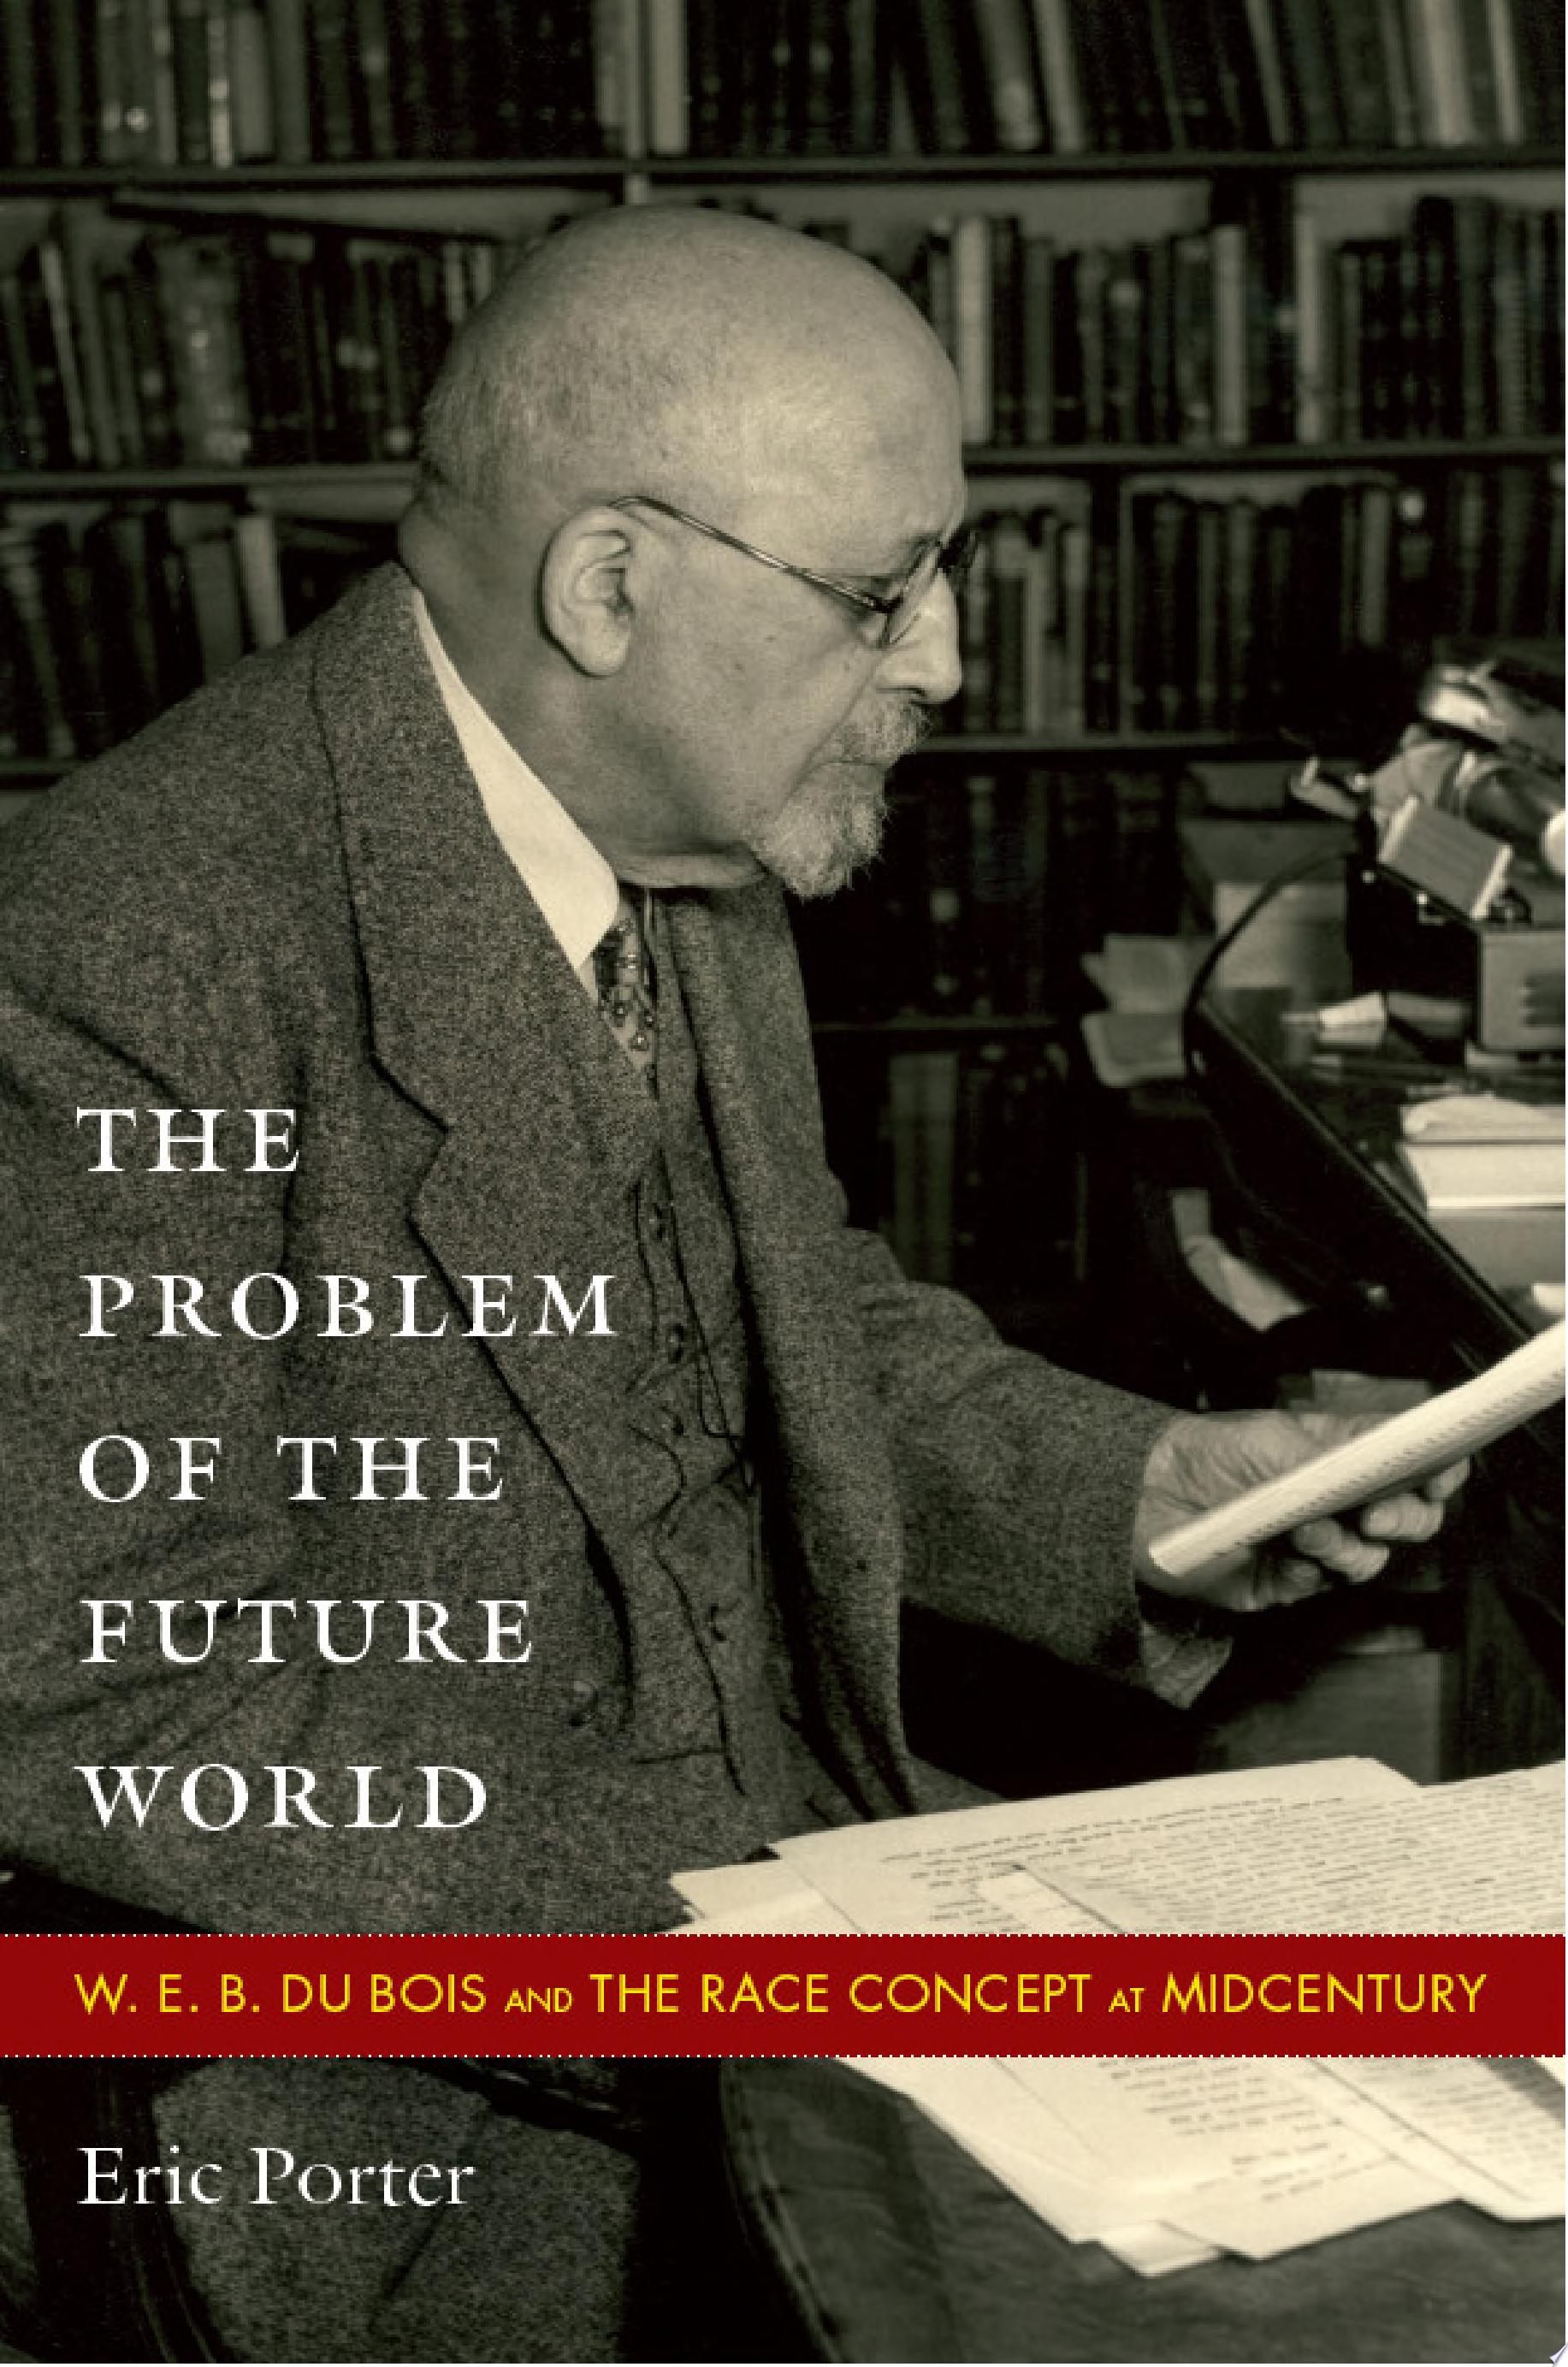 The Problem of the Future World